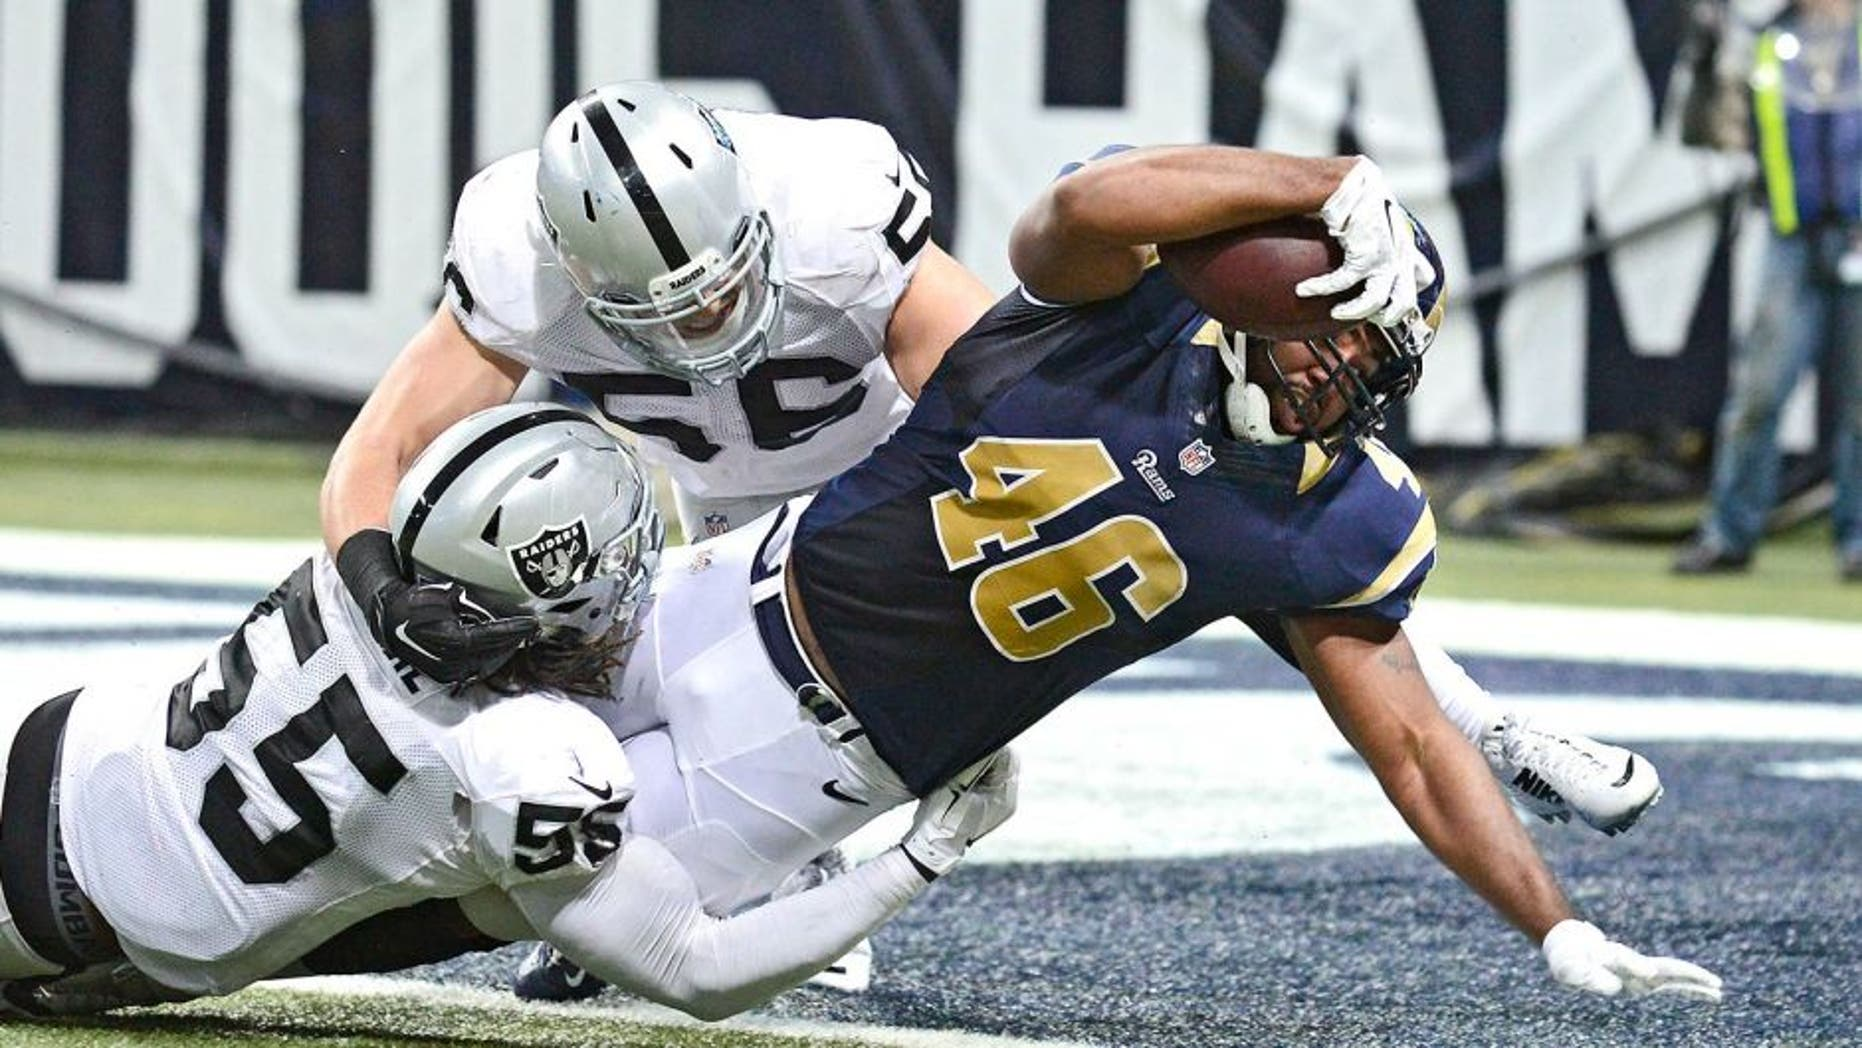 Nov 30, 2014; St. Louis, MO, USA; St. Louis Rams tight end Cory Harkey (46) is tackled into the end zone by Oakland Raiders outside linebacker Sio Moore (55) for a four yard touchdown during the first half at the Edward Jones Dome. Mandatory Credit: Jeff Curry-USA TODAY Sports